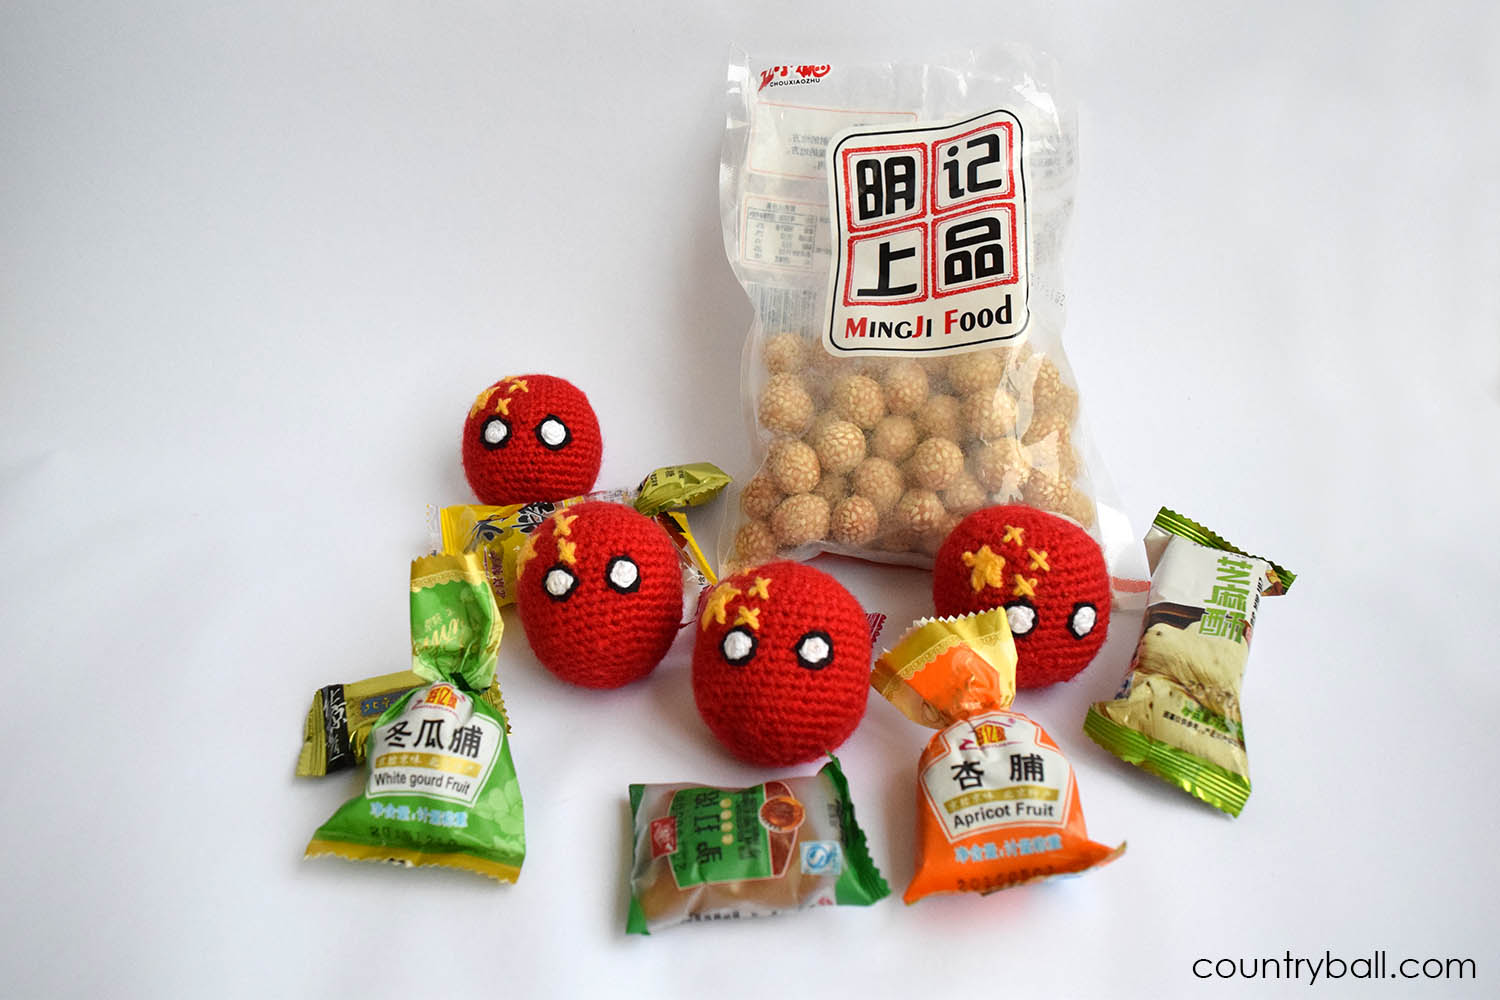 Chinaball with some Chinese Sweets